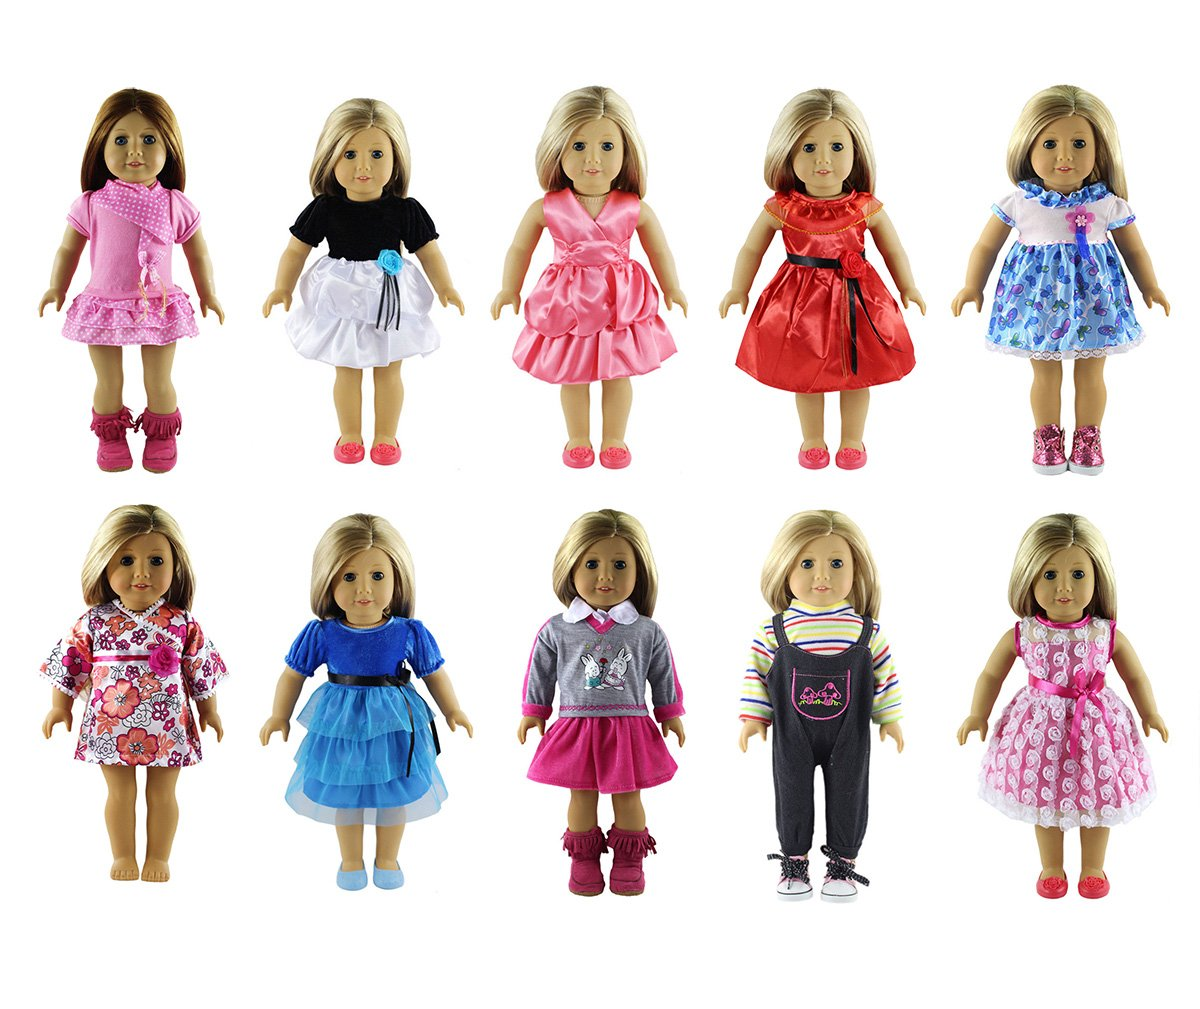 Party Zealot 18 inches Doll Clothes 10 Different Unique Styles Well Fit for American Girls Doll, Doll and Me, My Life Doll, and My Generation Doll